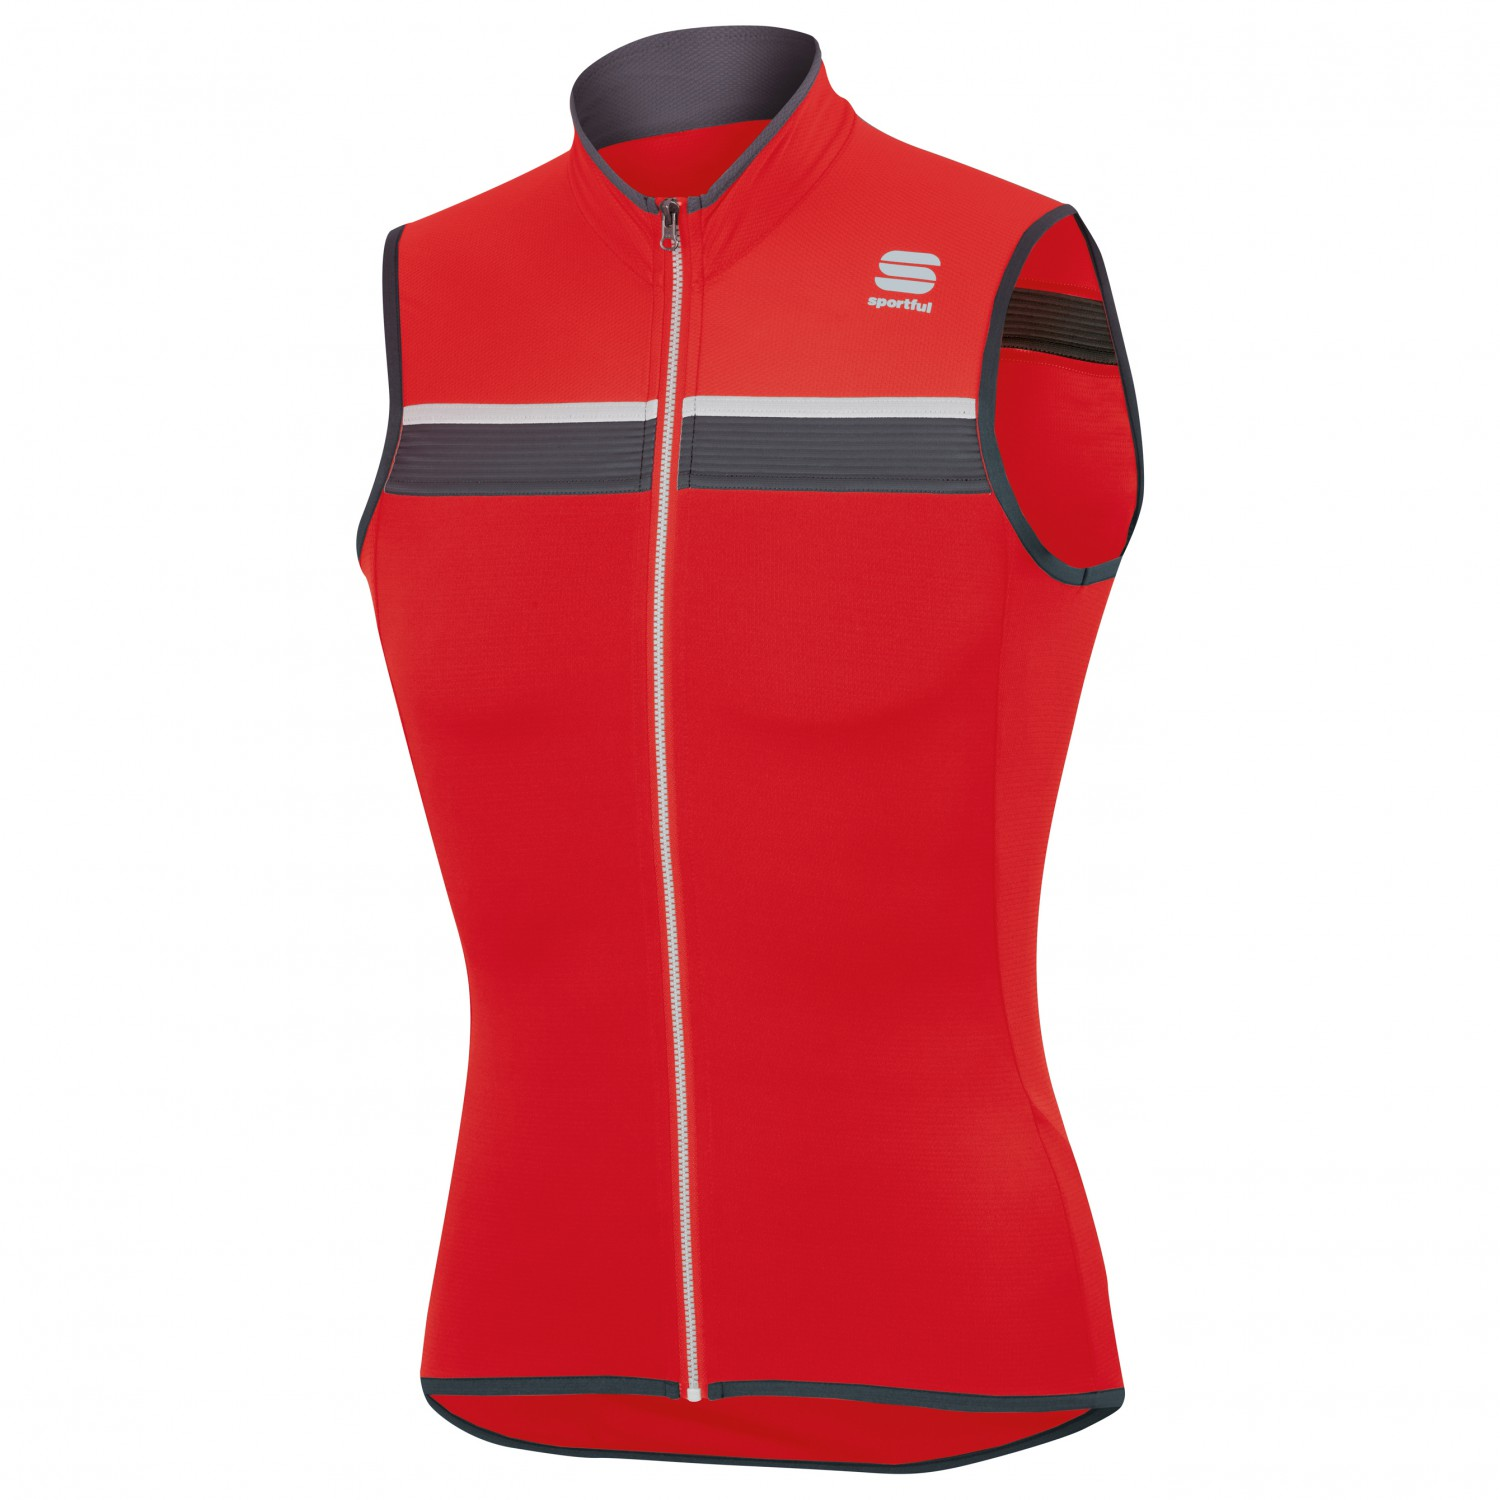 56942af3bbfb05 Sportful Pista Sleeveless - Cycling Singlet Men s